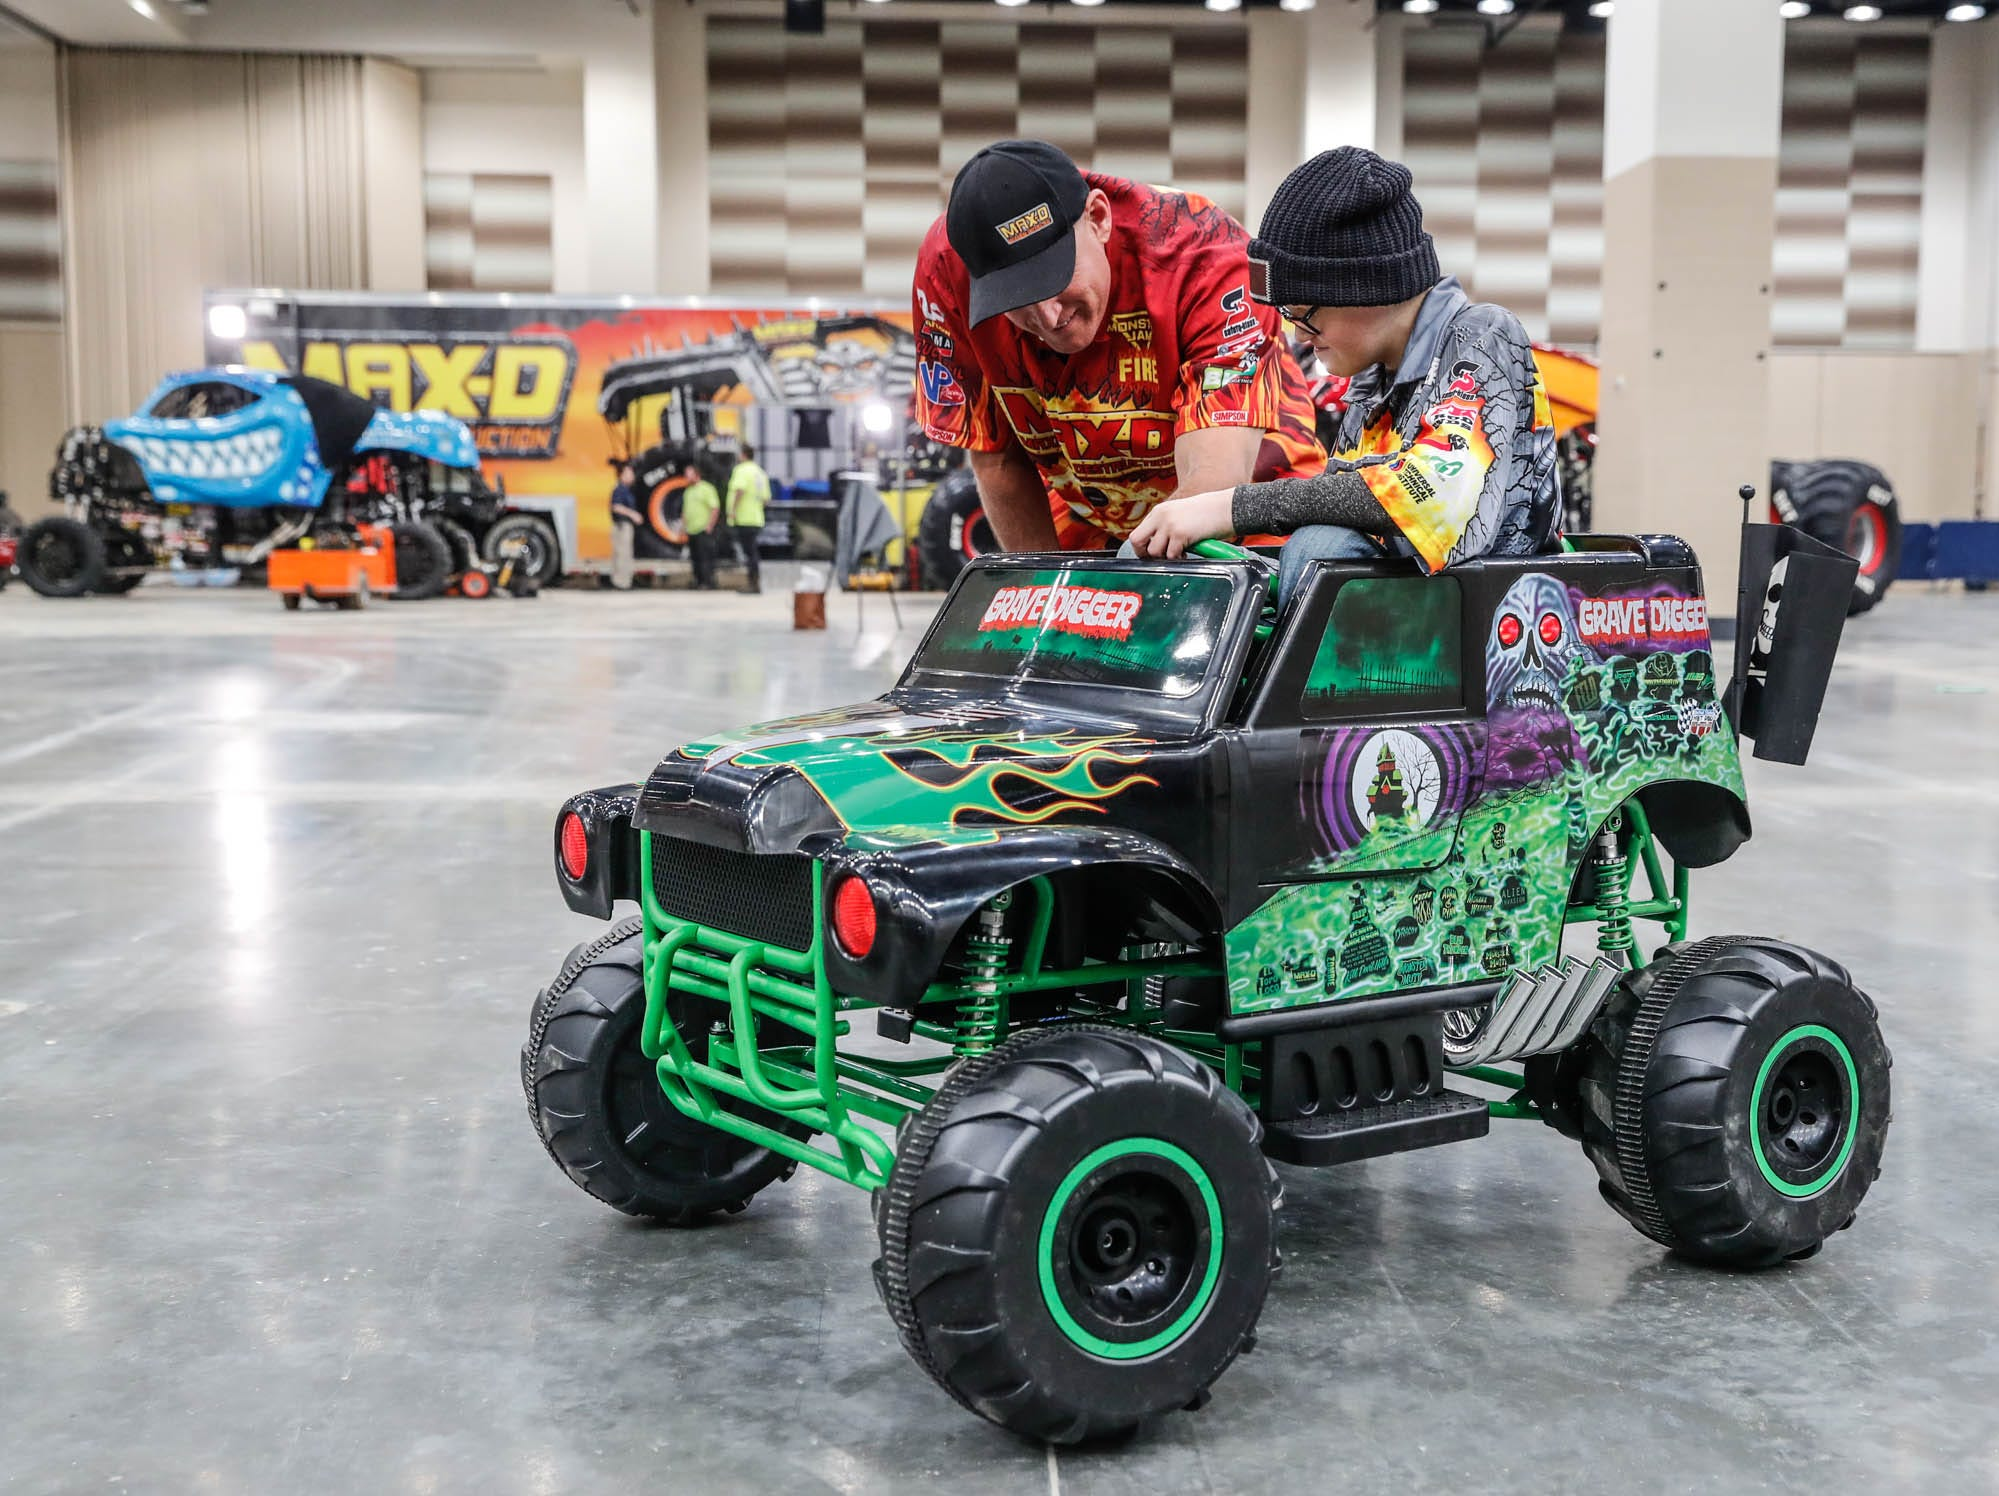 St. Barnabas Catholic School fourth grader, James Egold, who just completed chemo therapy, gets driving instructions from Maximum Destruction monster truck driver Tom Meents, while sitting in a mini Grave Digger Monster Truck, behind the scenes of the Monster Jam at Lucas Oil Stadium on Thursday, Feb. 7, 2019. The visit was thanks to a team up by Monster Jam and Love Your Melon to remodel Egold's room at home while Egold met with Maximum Destruction monster truck driver Tom Meents.